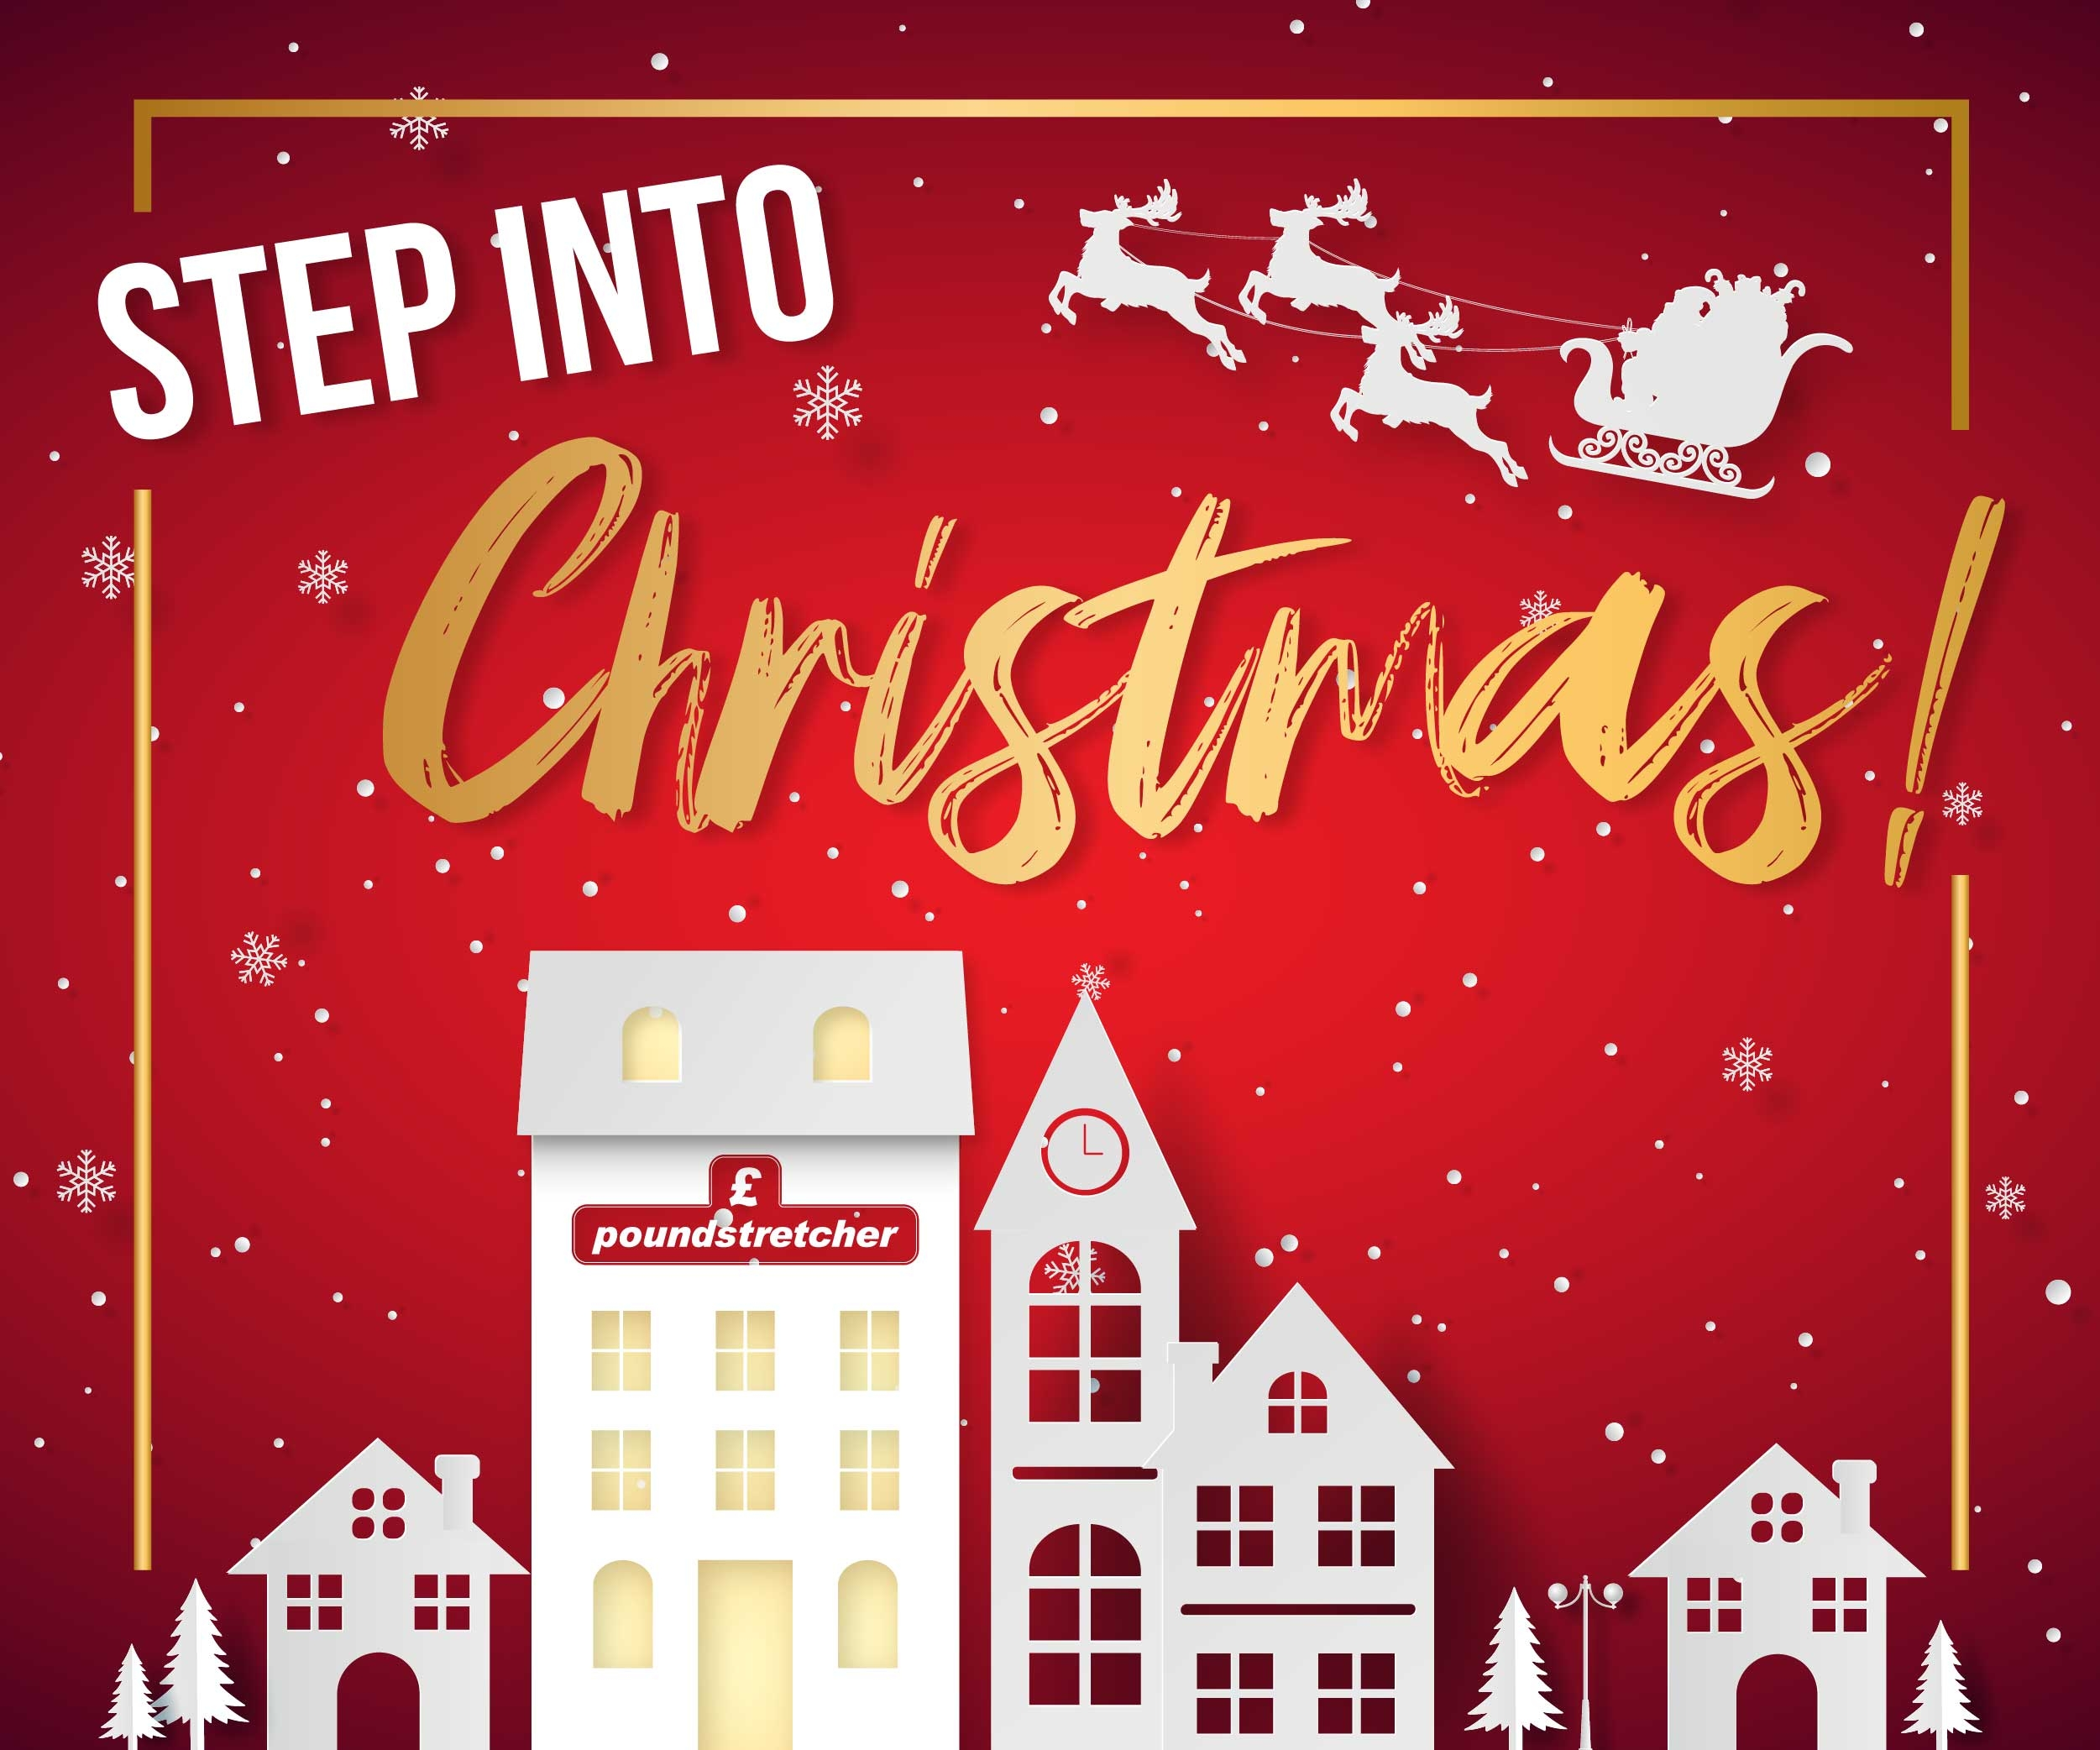 Christmas Cards, Gift Wrap & Accessories Image